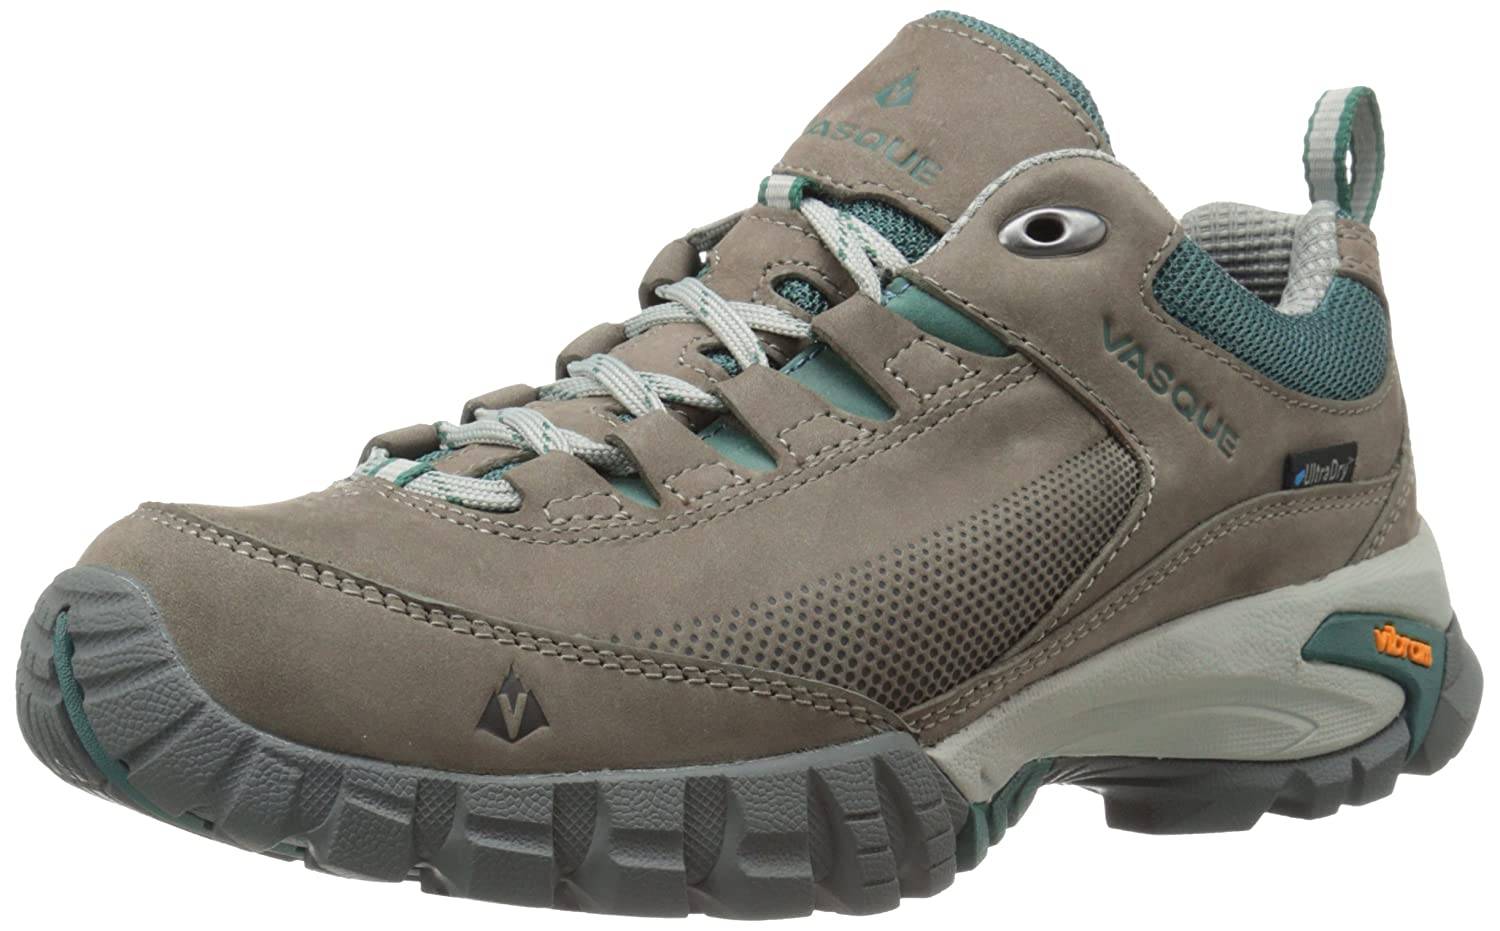 Vasque Women's Talus Trek Low UltraDry Hiking Shoe B00TYK05PC 8 B(M) US|Gargoyle/Jasper